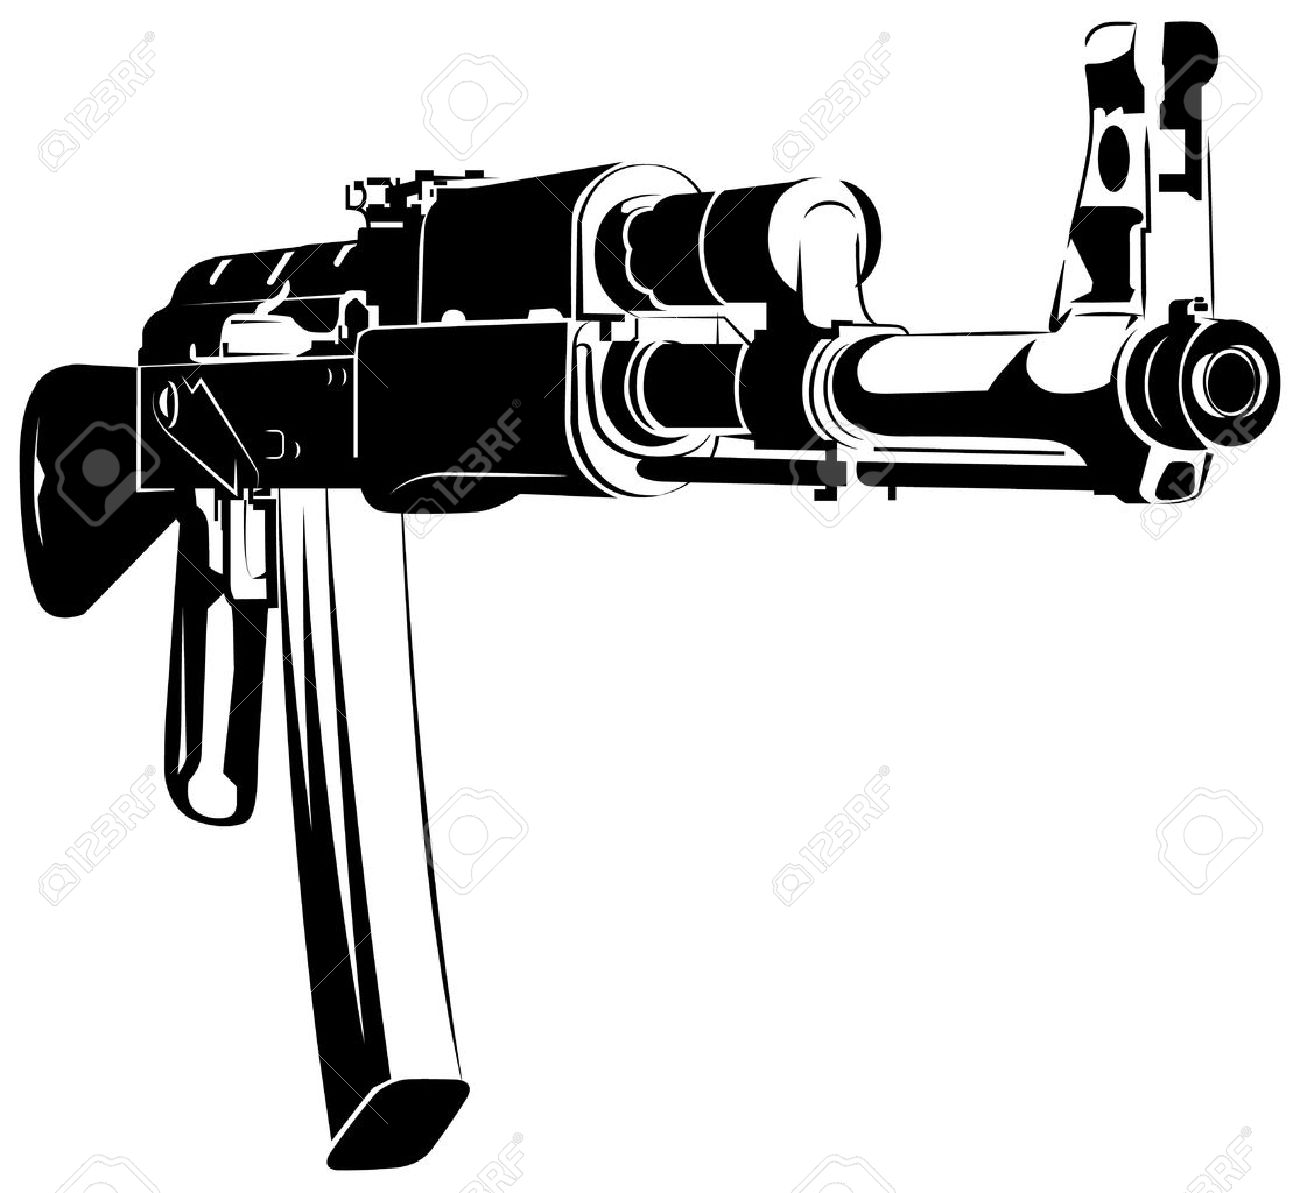 vector illustration black and white machine gun ak 47 isolated rh 123rf com ak 47 vector free ak47 logo vector